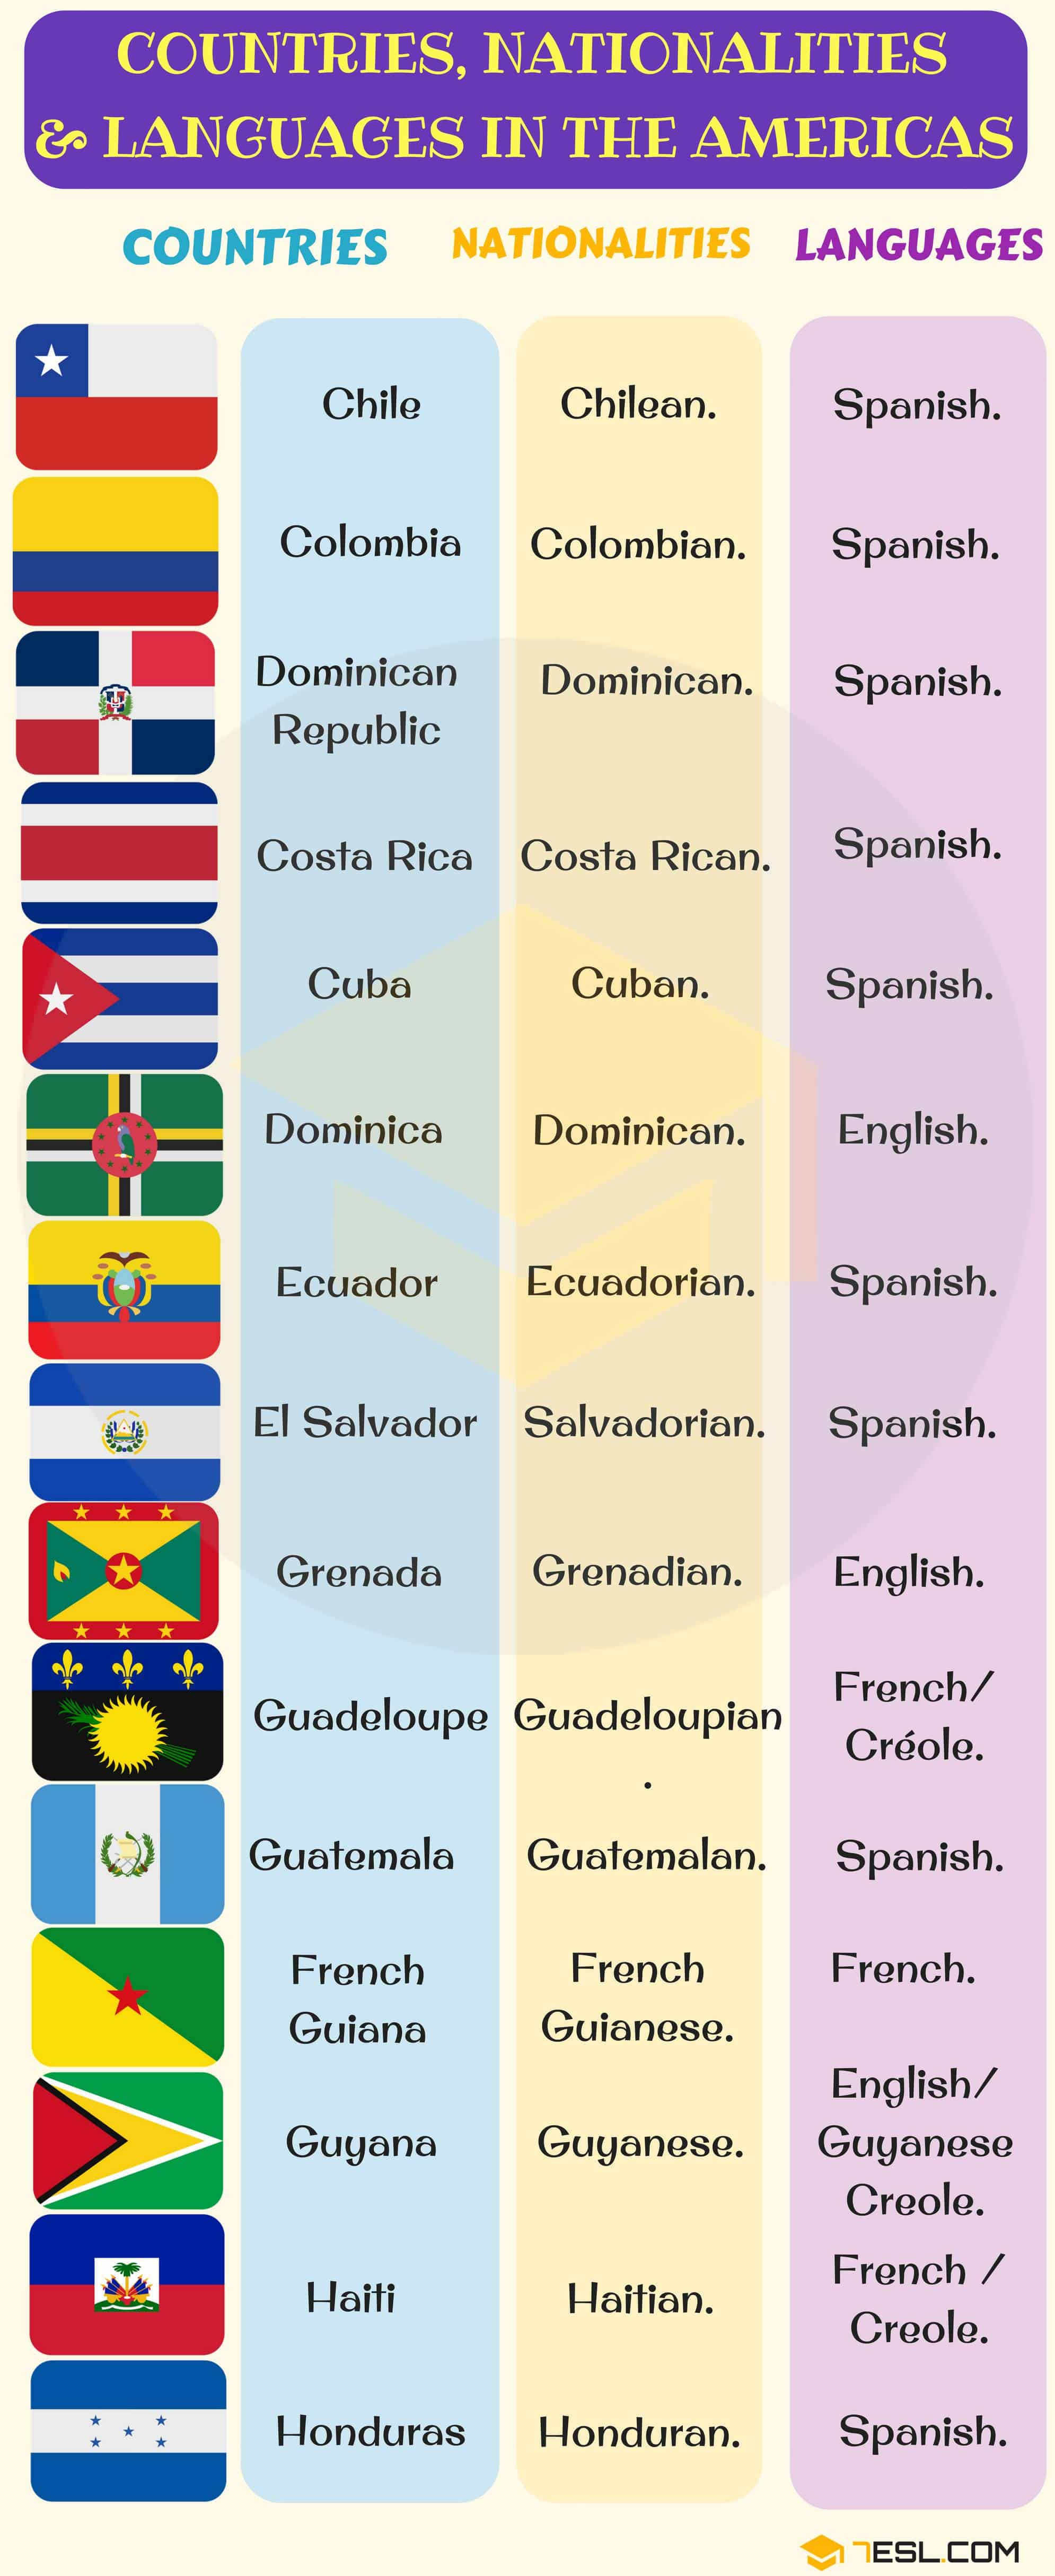 North, Central, South American Countries with Languages, Nationalities & Flags 2